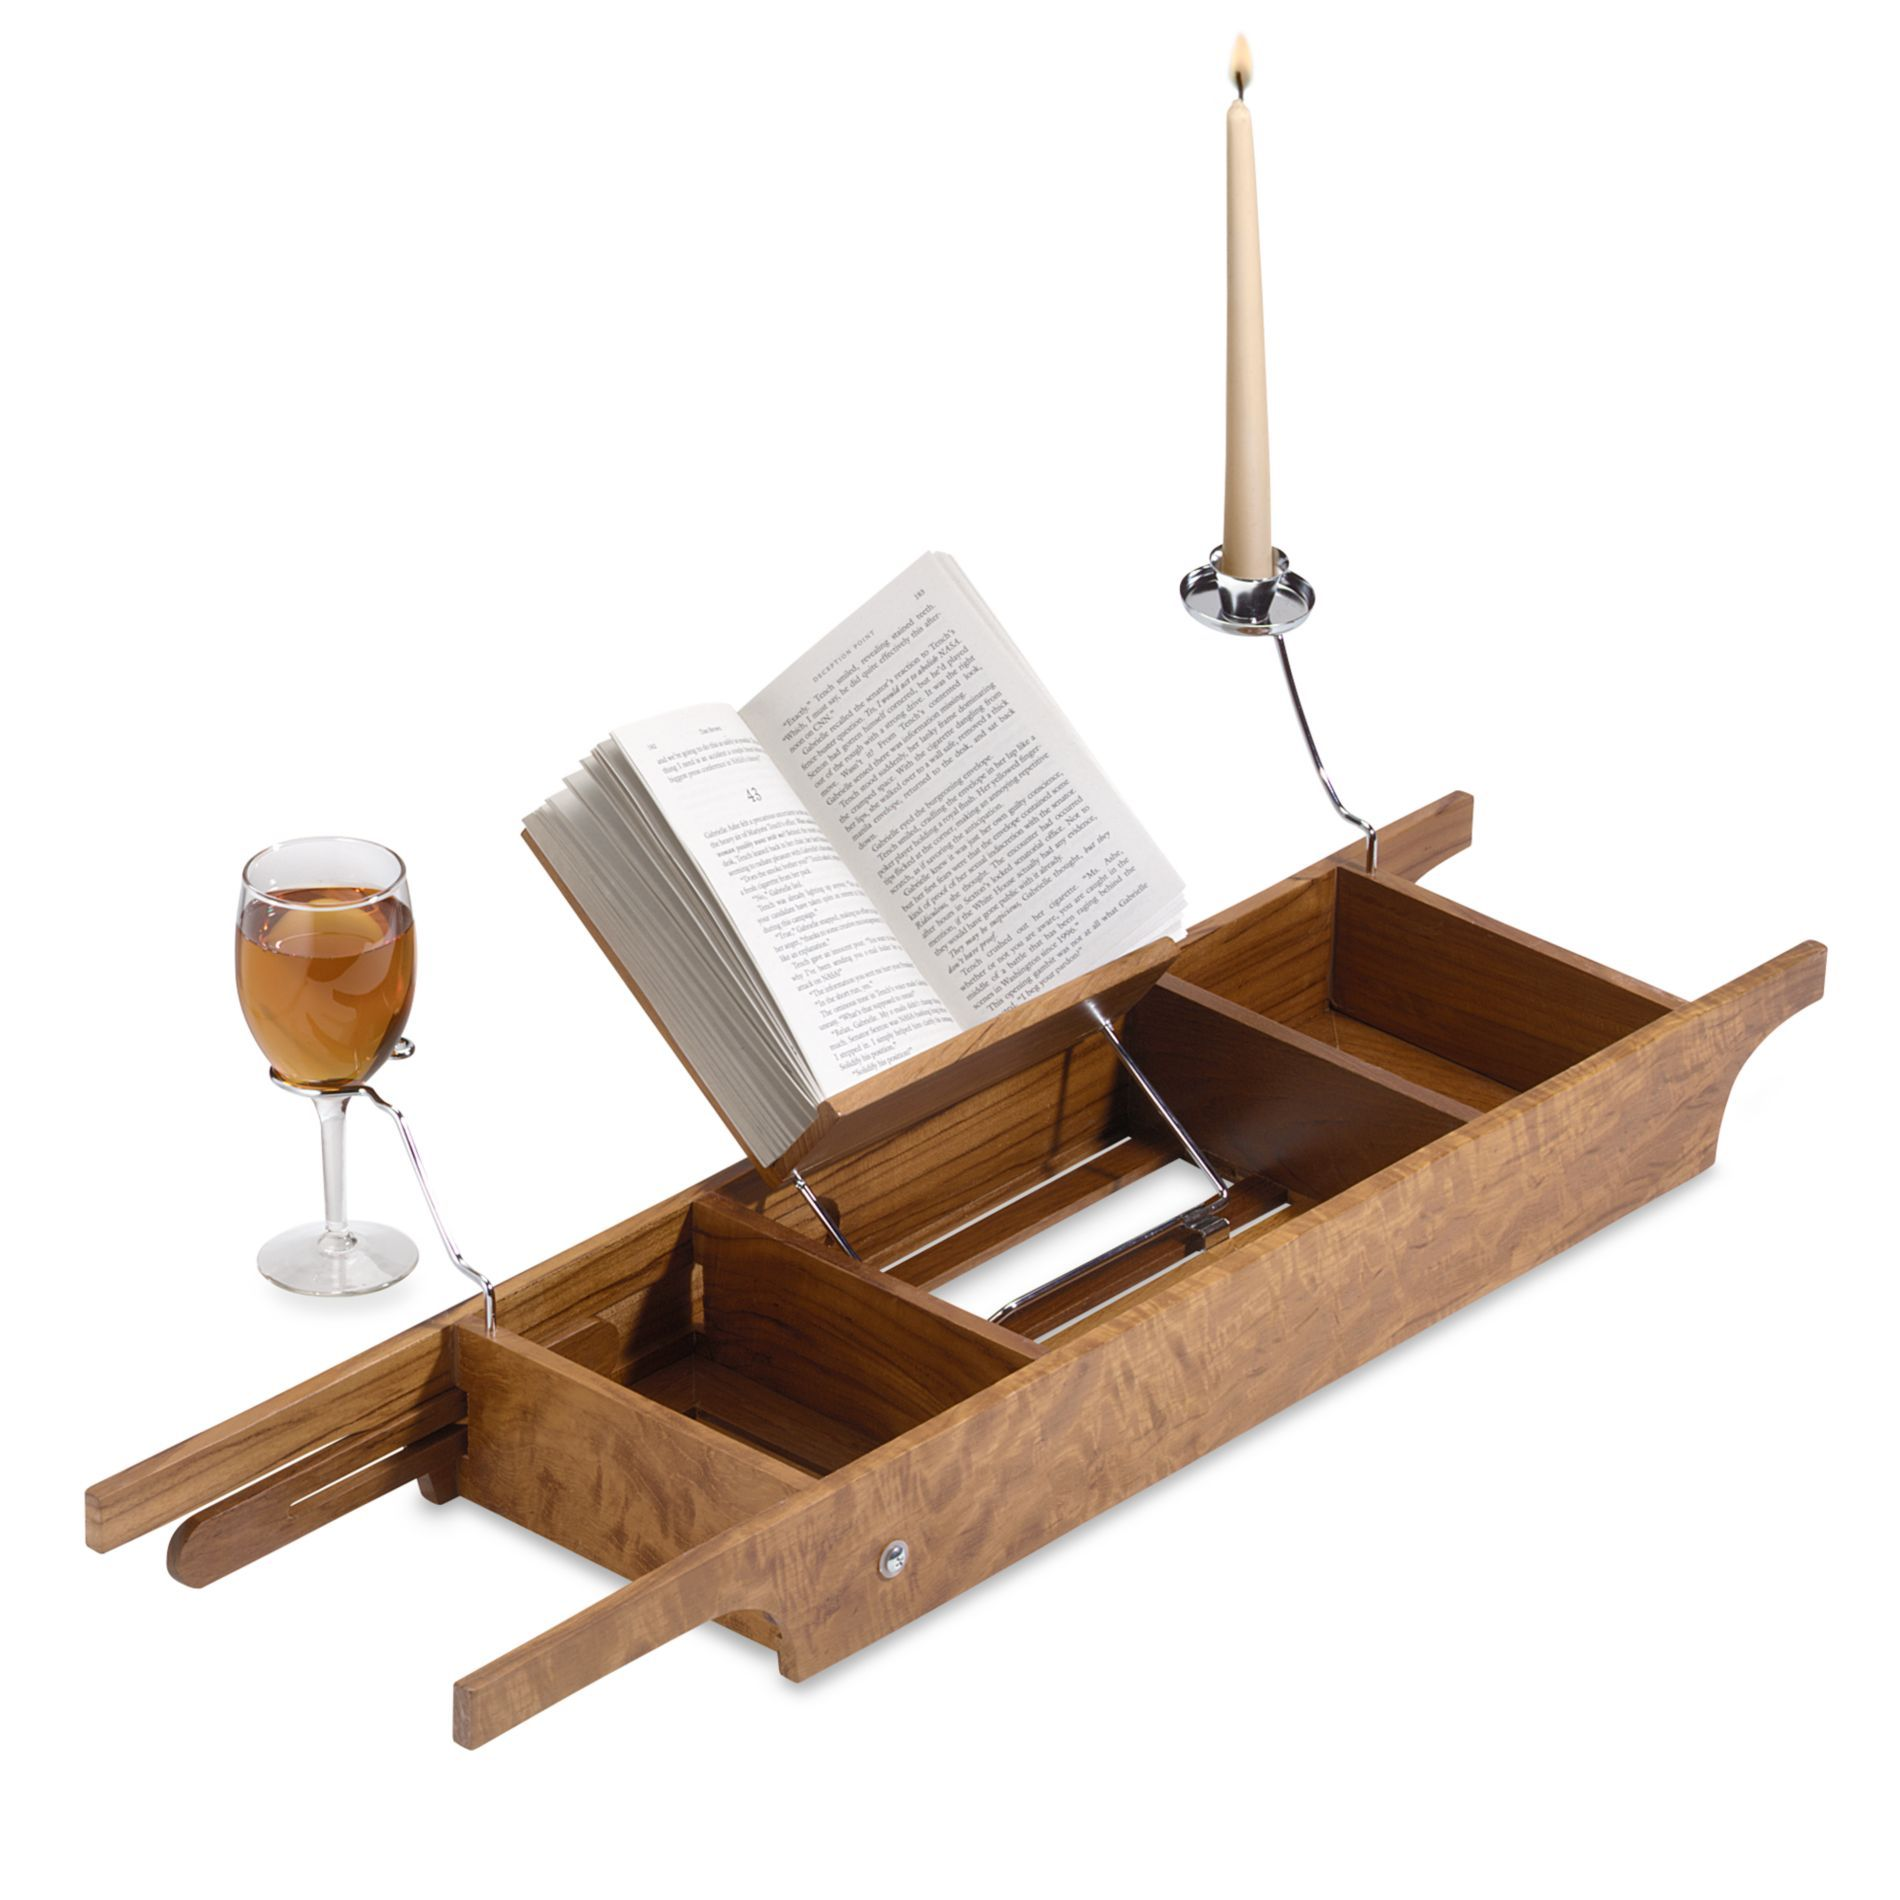 Teak Cross Tub Caddy Bedbathandbeyond Com Tub Bathtub Caddy